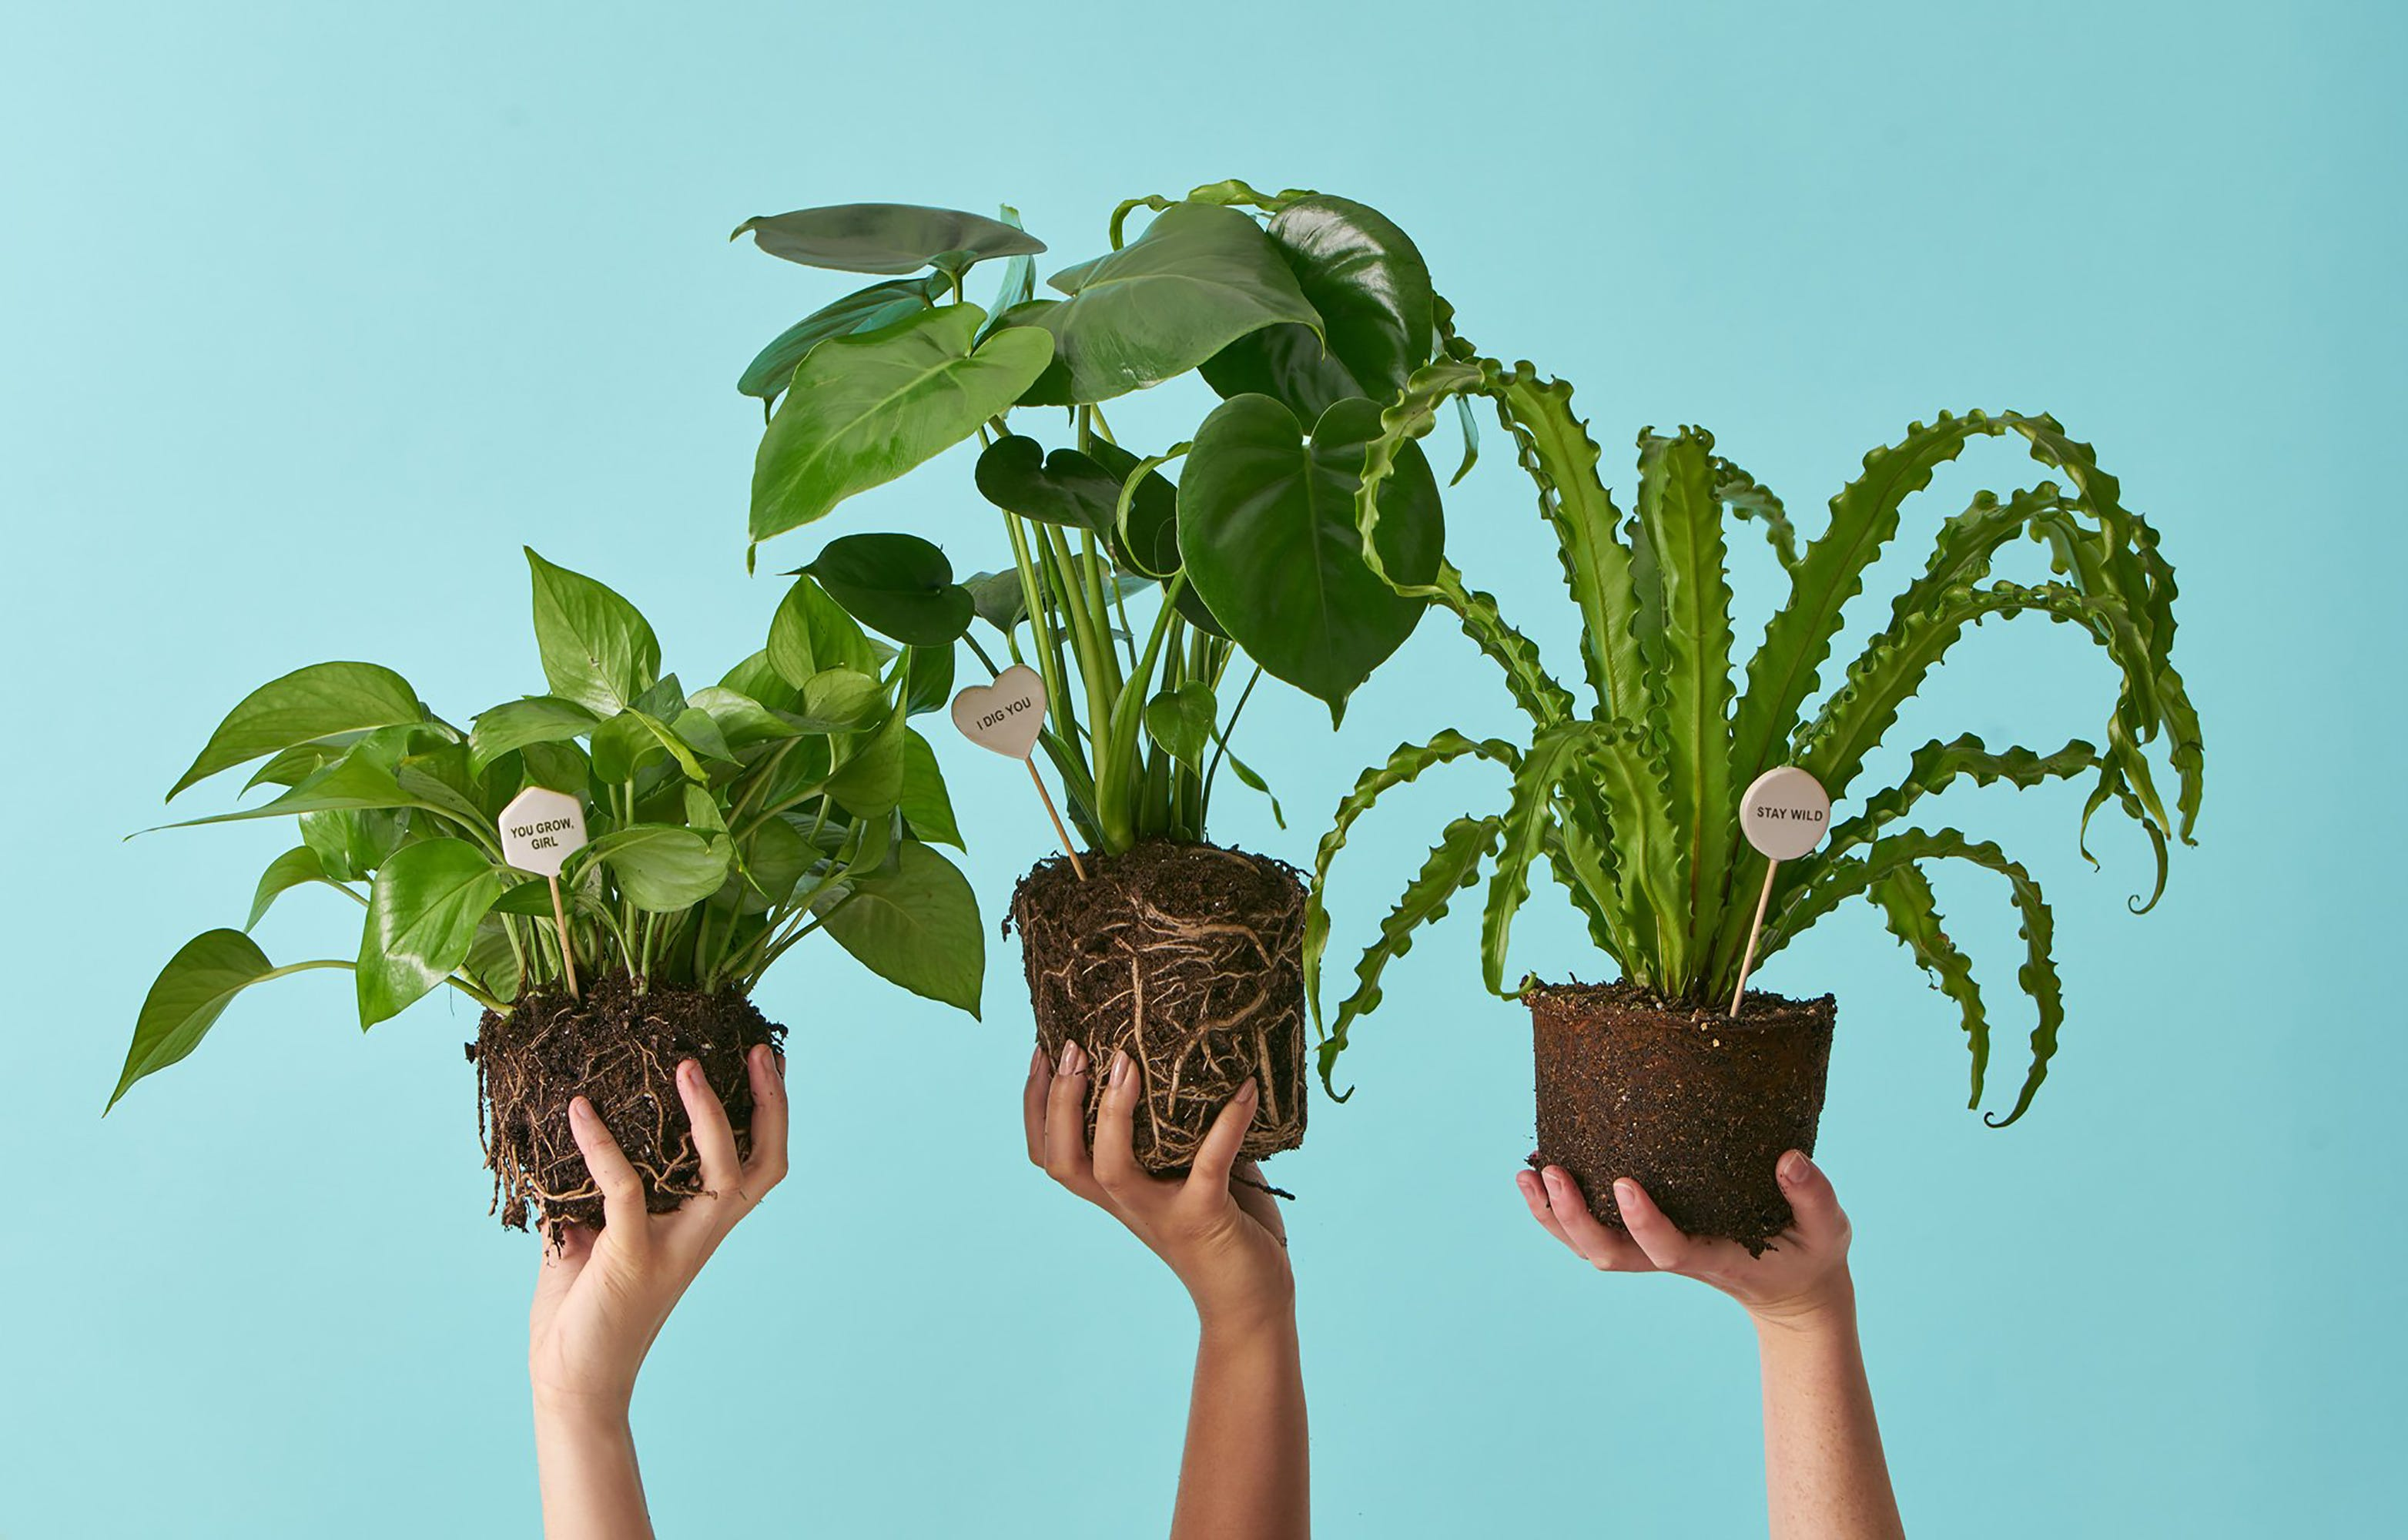 Unusual House Plants For Sale Buying Plants Online Plant Stores To Order Houseplants